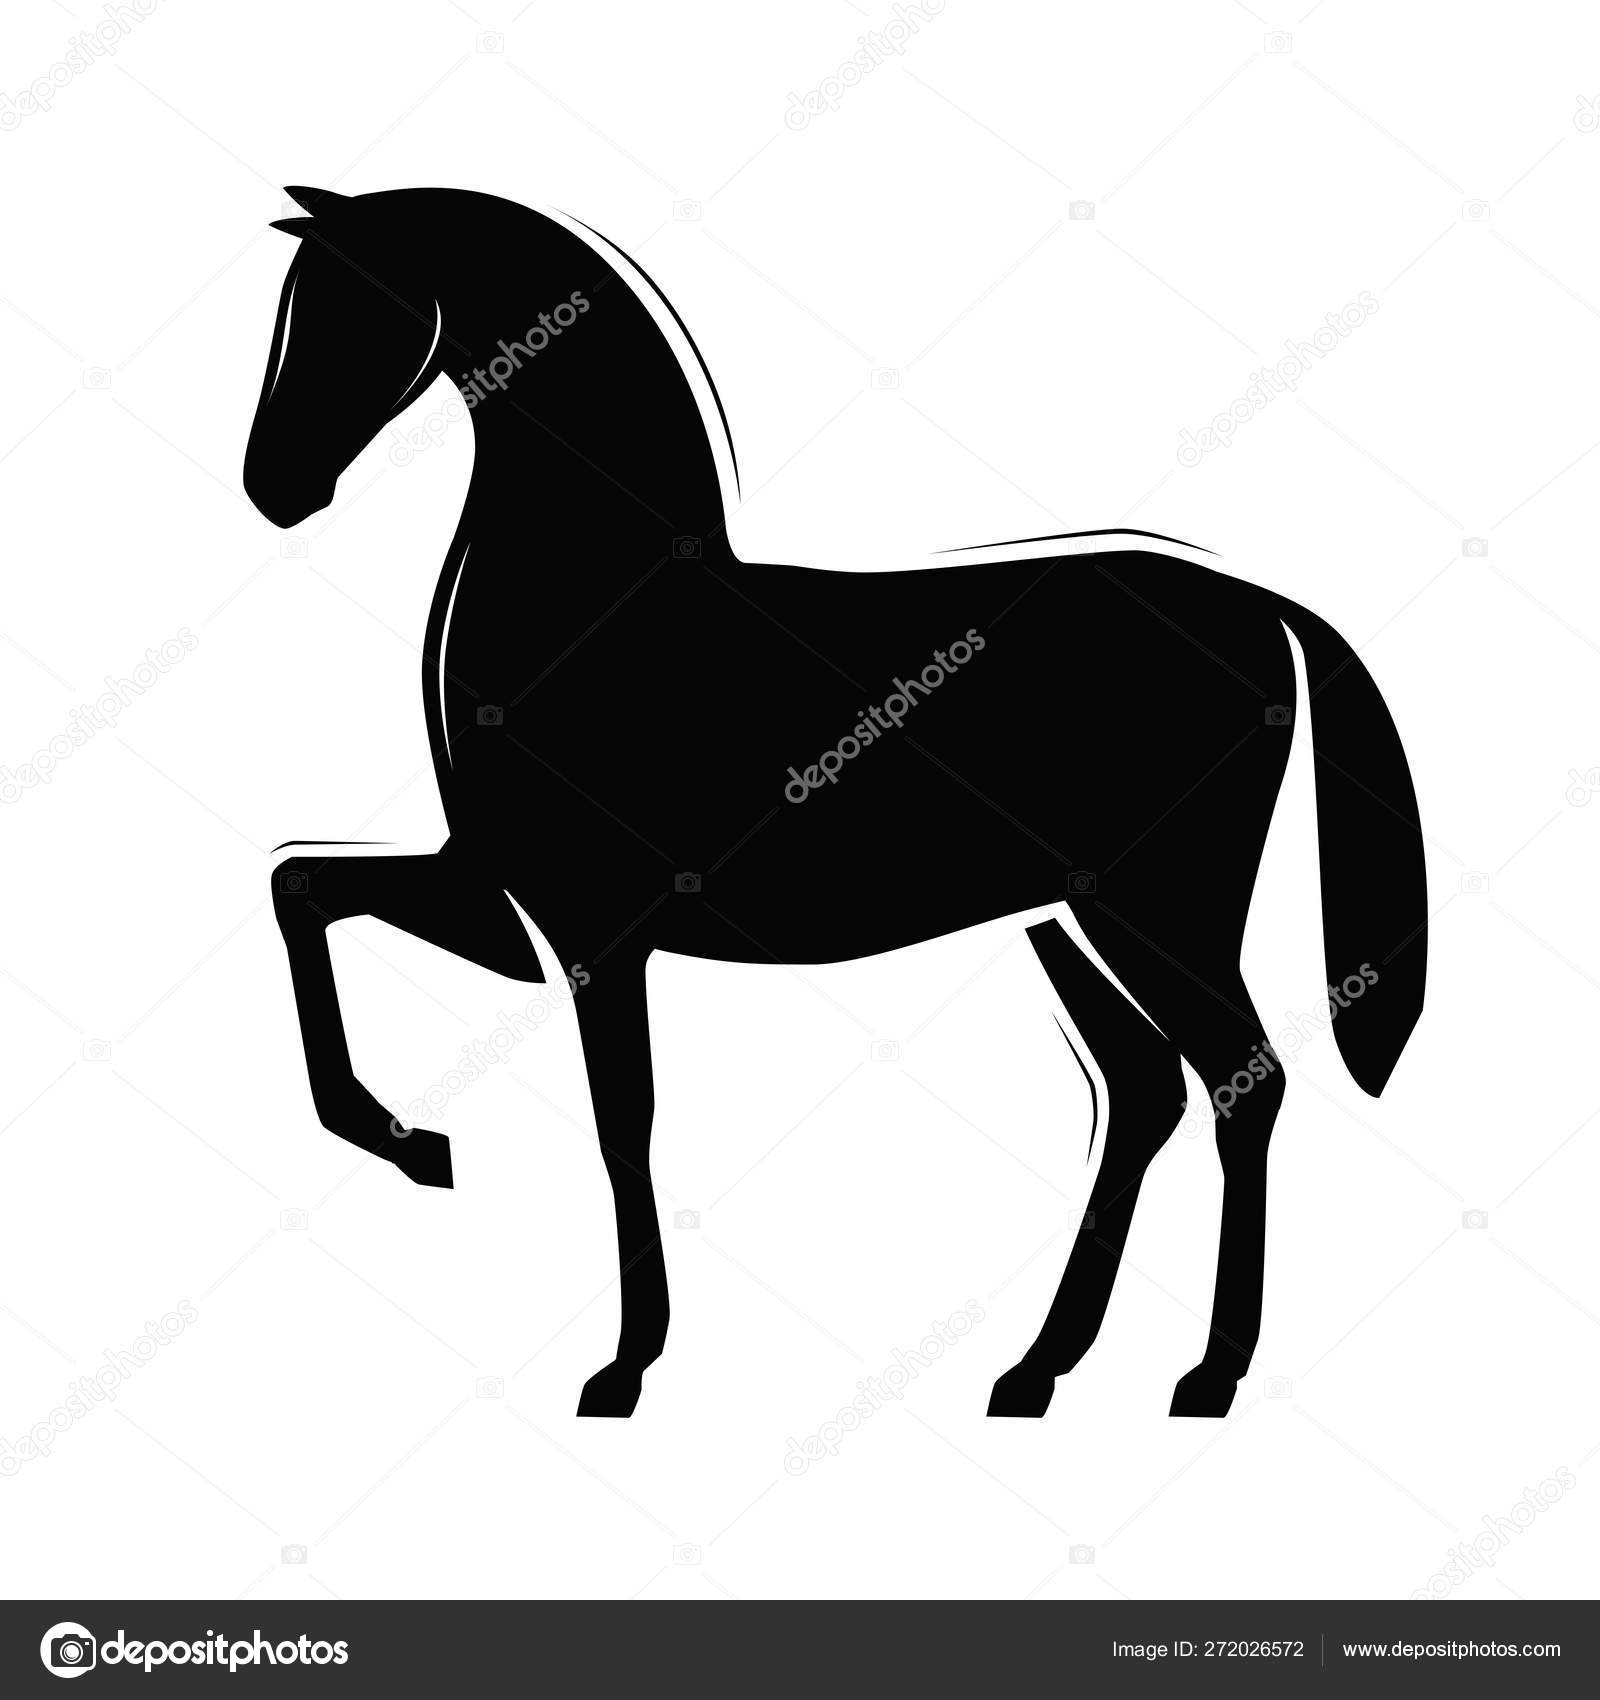 Horse Silhouette Racehorse Vector Illustration Isolated On White Background Stock Vector C Sergeypykhonin 272026572